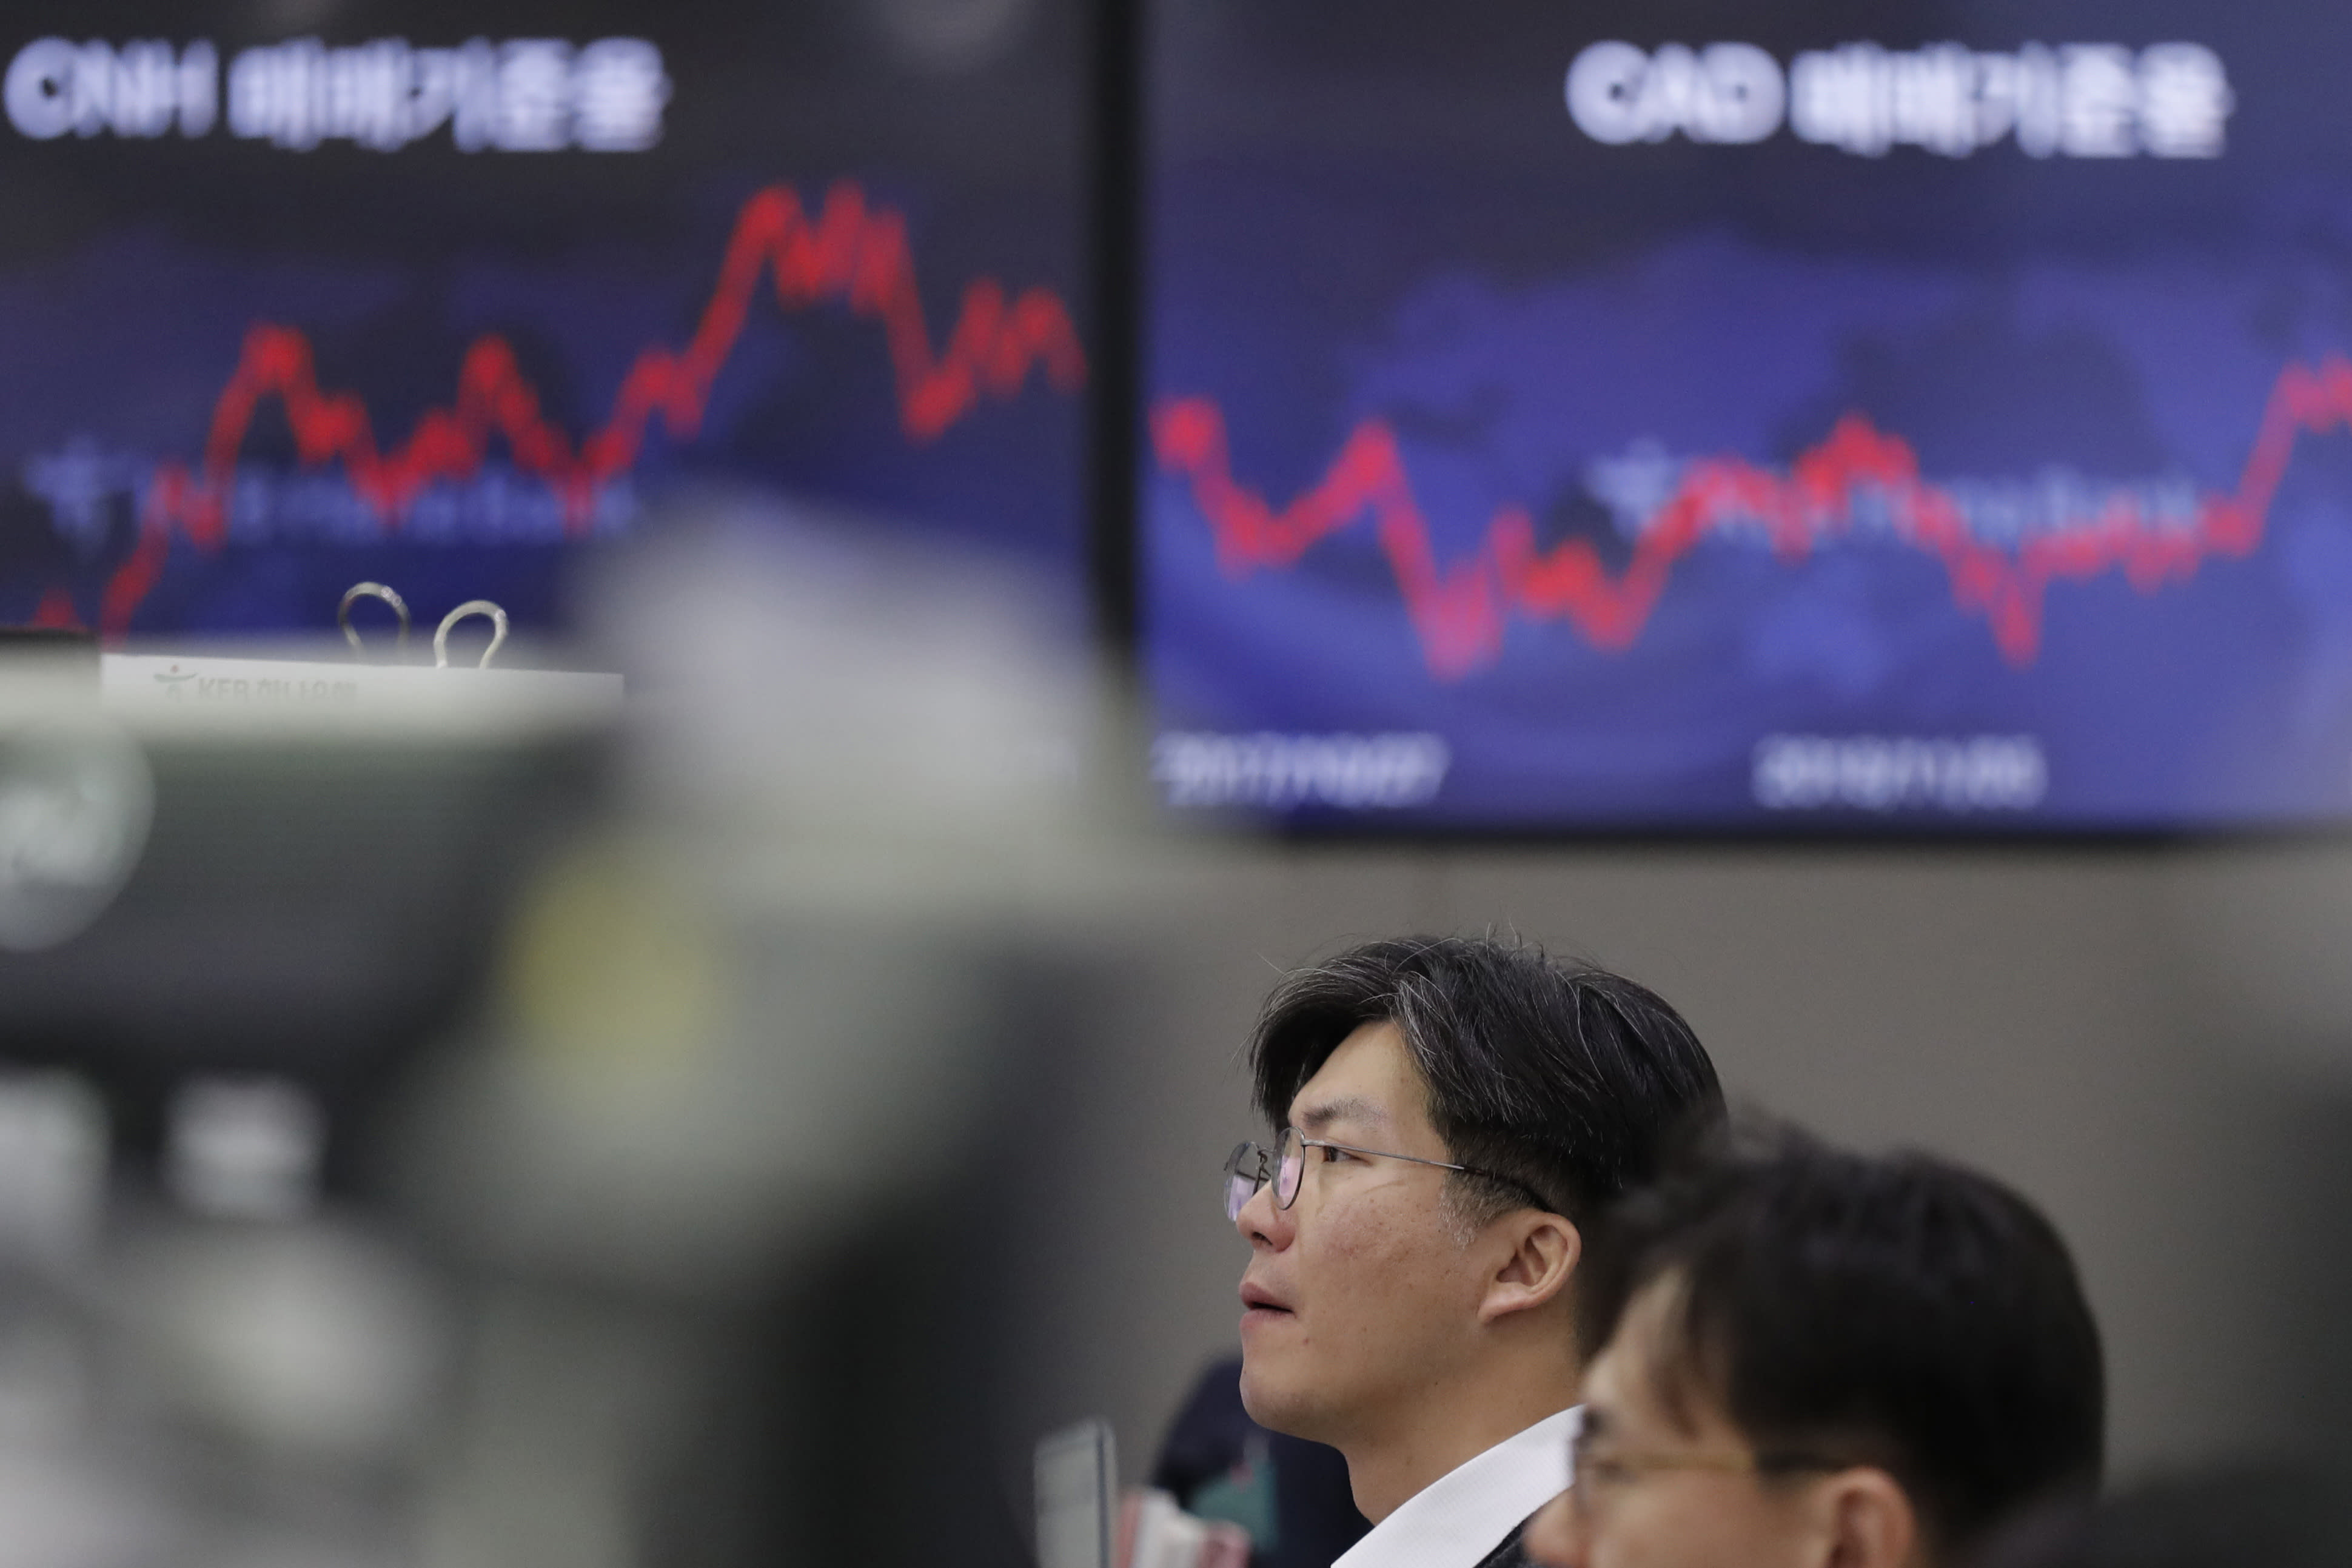 A currency trader watches computer monitors near the screens at the foreign exchange dealing room in Seoul, South Korea, Friday, Nov. 8, 2019. Asian stock markets were mixed Friday amid uncertainty about a possible U.S.-Chinese agreement to roll back tariffs in their trade war. (AP Photo/Lee Jin-man)